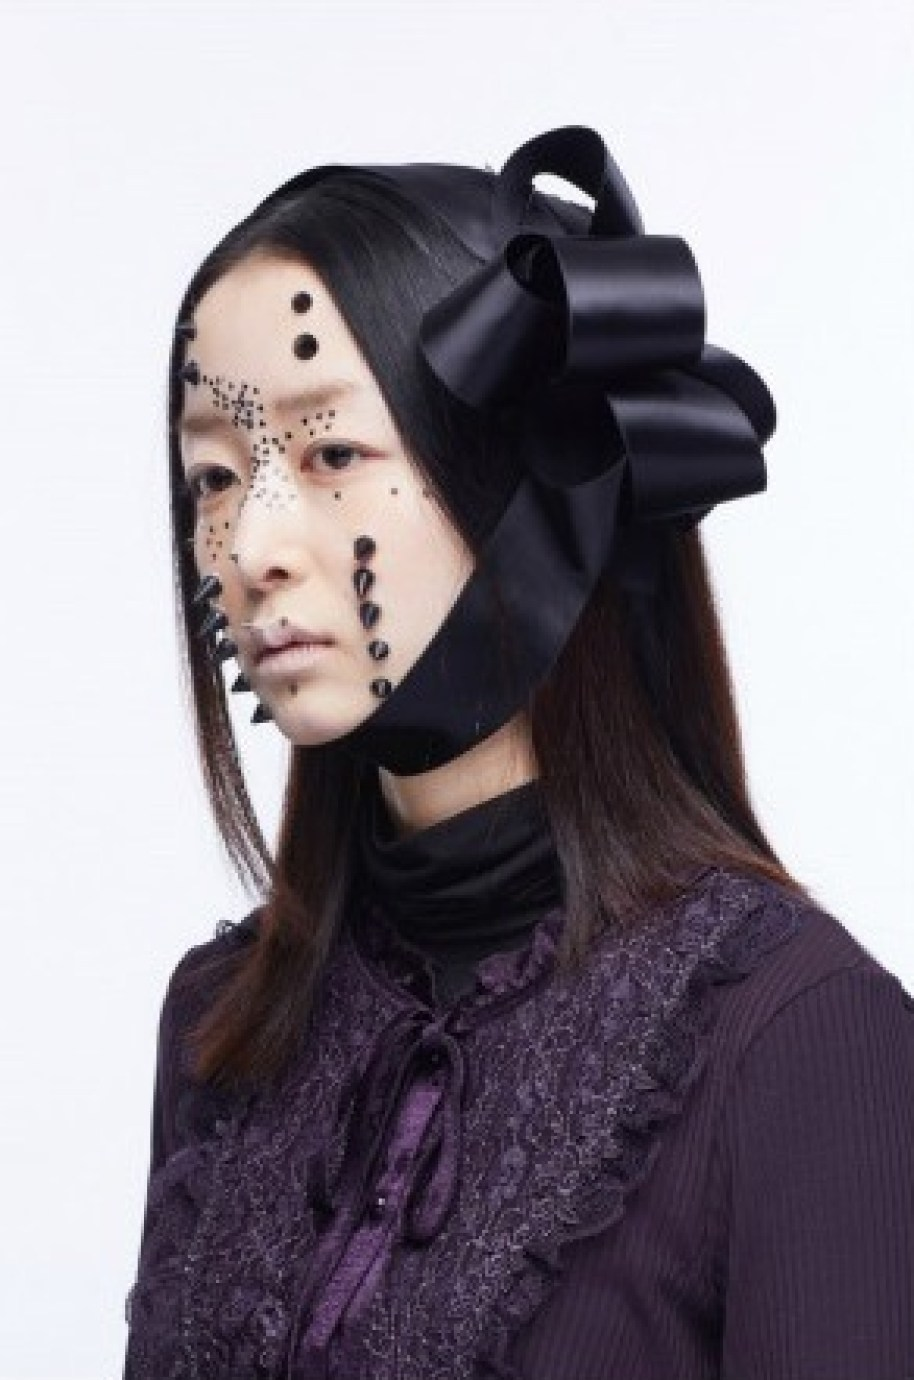 c-lab Tech Camouflage Anti-Facial Recognition